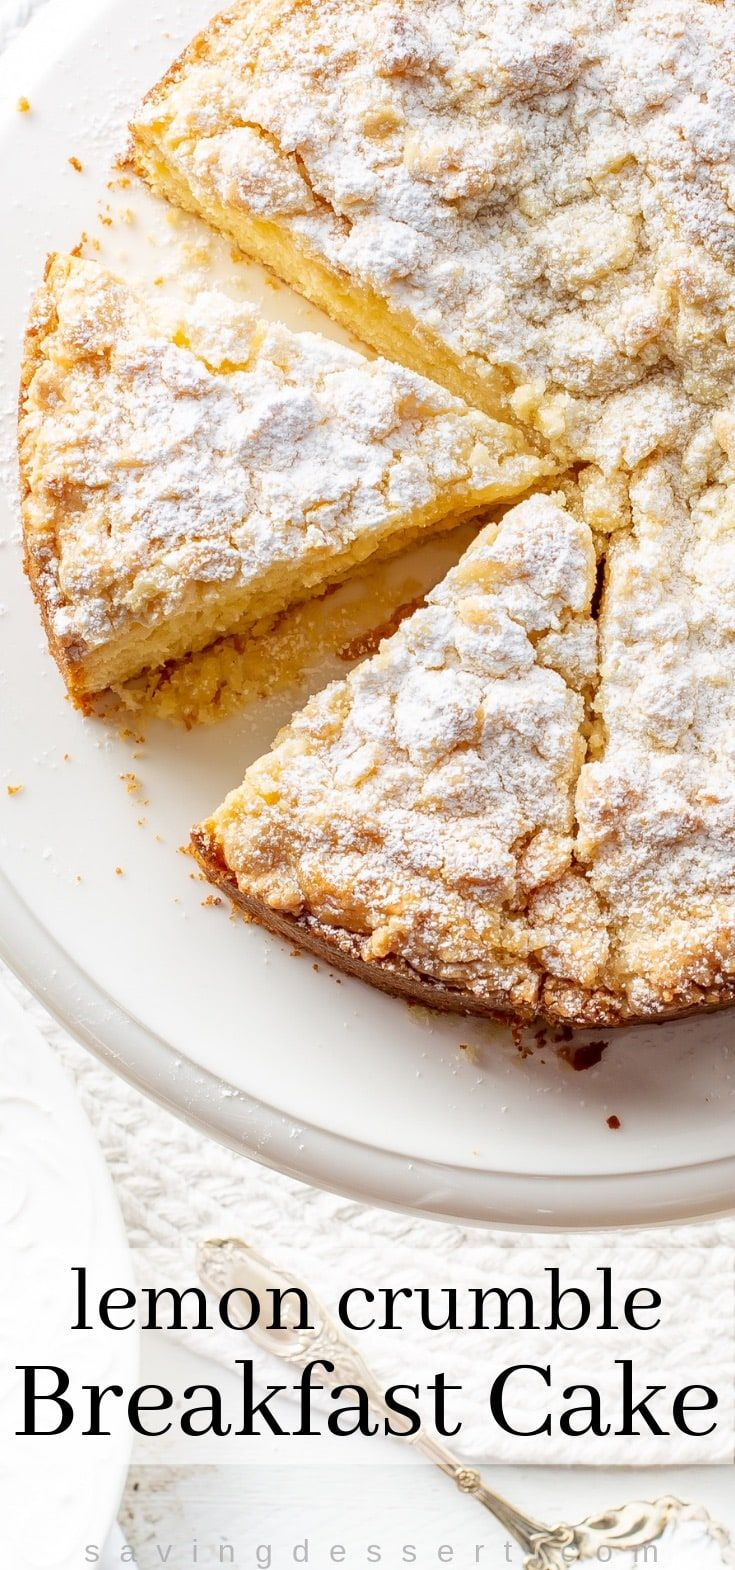 Lemon Crumble Breakfast Cake ~ from the first bite to the last, this cake is loaded with bright lemon flavor. This is a moist, tender cake topped with a sweet crumble top. Great for breakfast, brunch, afternoon tea or dessert. #breakfastcake #cake #lemoncake #lemon #crumbletop #breakfast #brunch #coffeecake #dessert #crumblecake